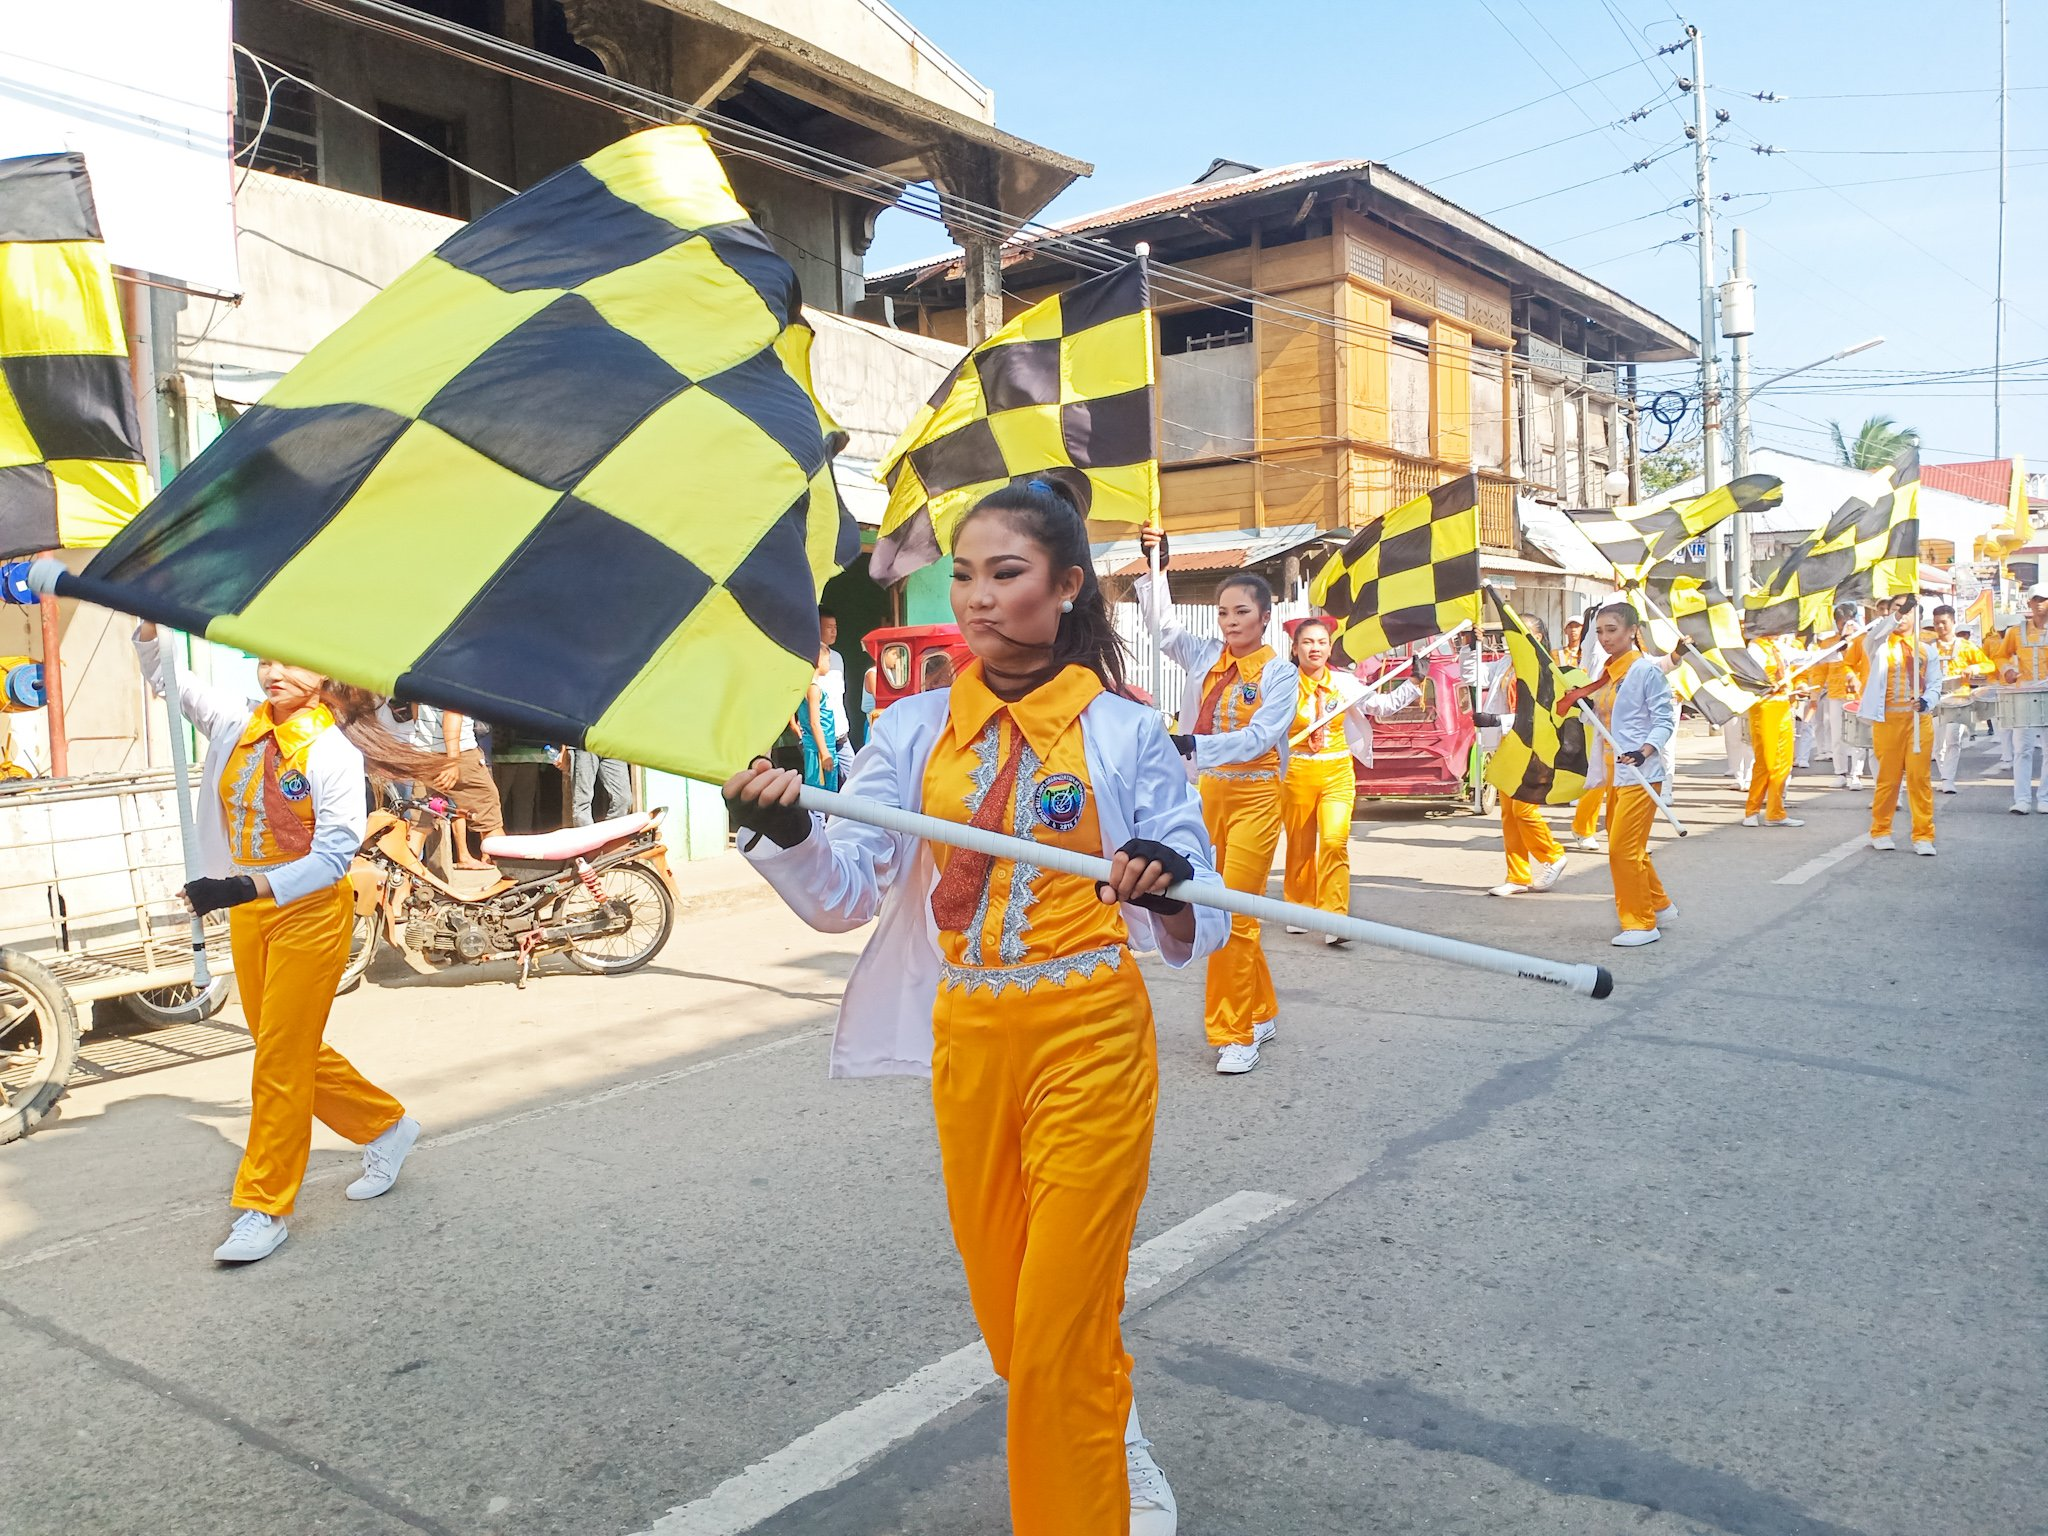 Capalonga Travel Guide - Cultural Parade